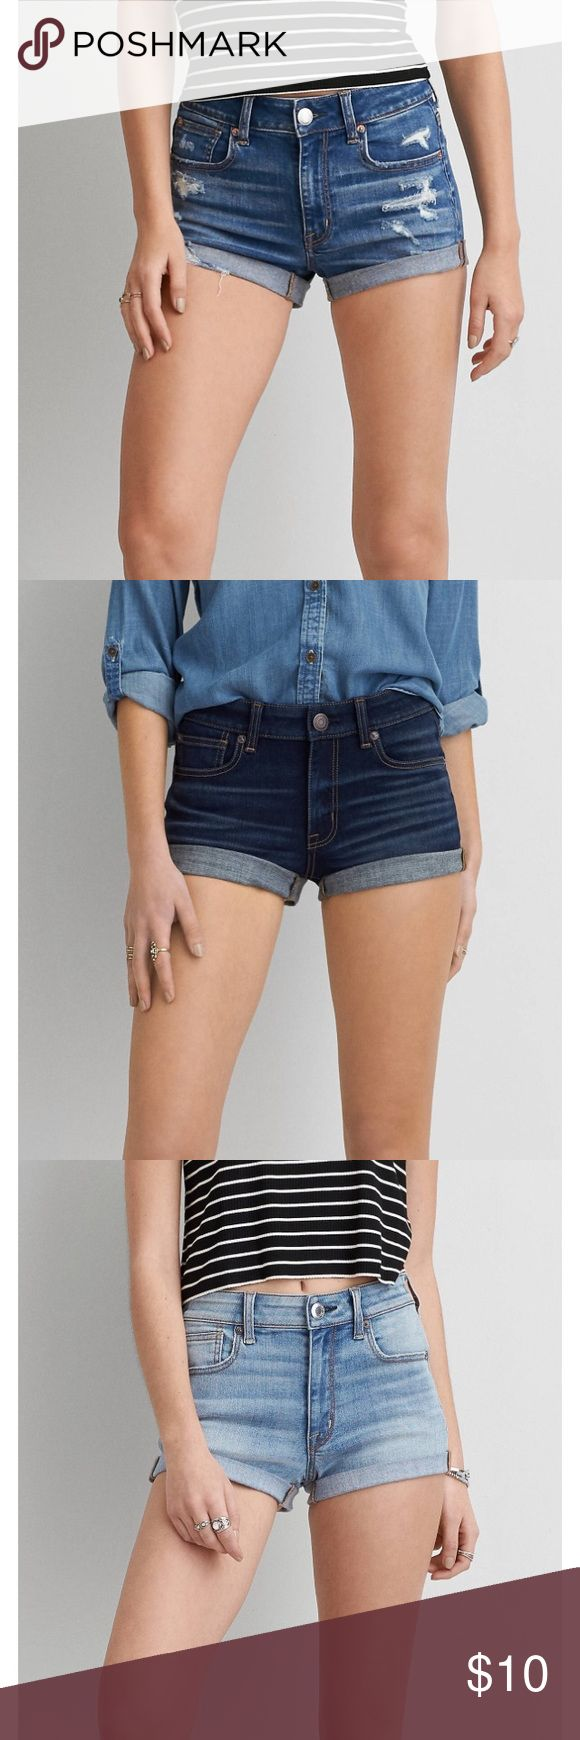 ISO✨American Eagle Hi-Rise Shortie I am ISO American eagle hi-rise shortie and the hi-rise festival shorts 🌸size 8 in the hi-rise shortie and size 6 in the festival, maybe 8! Please do not buy this listing! I Am NOT SELLING THESE! Does not have to be these exact shorts, just these two styles. I am not looking to spend a ton, which is why I'm looking on here and not American eagles website! Let me know what you have! Looking to buy several pairs American Eagle Outfitters Shorts Jean Shorts